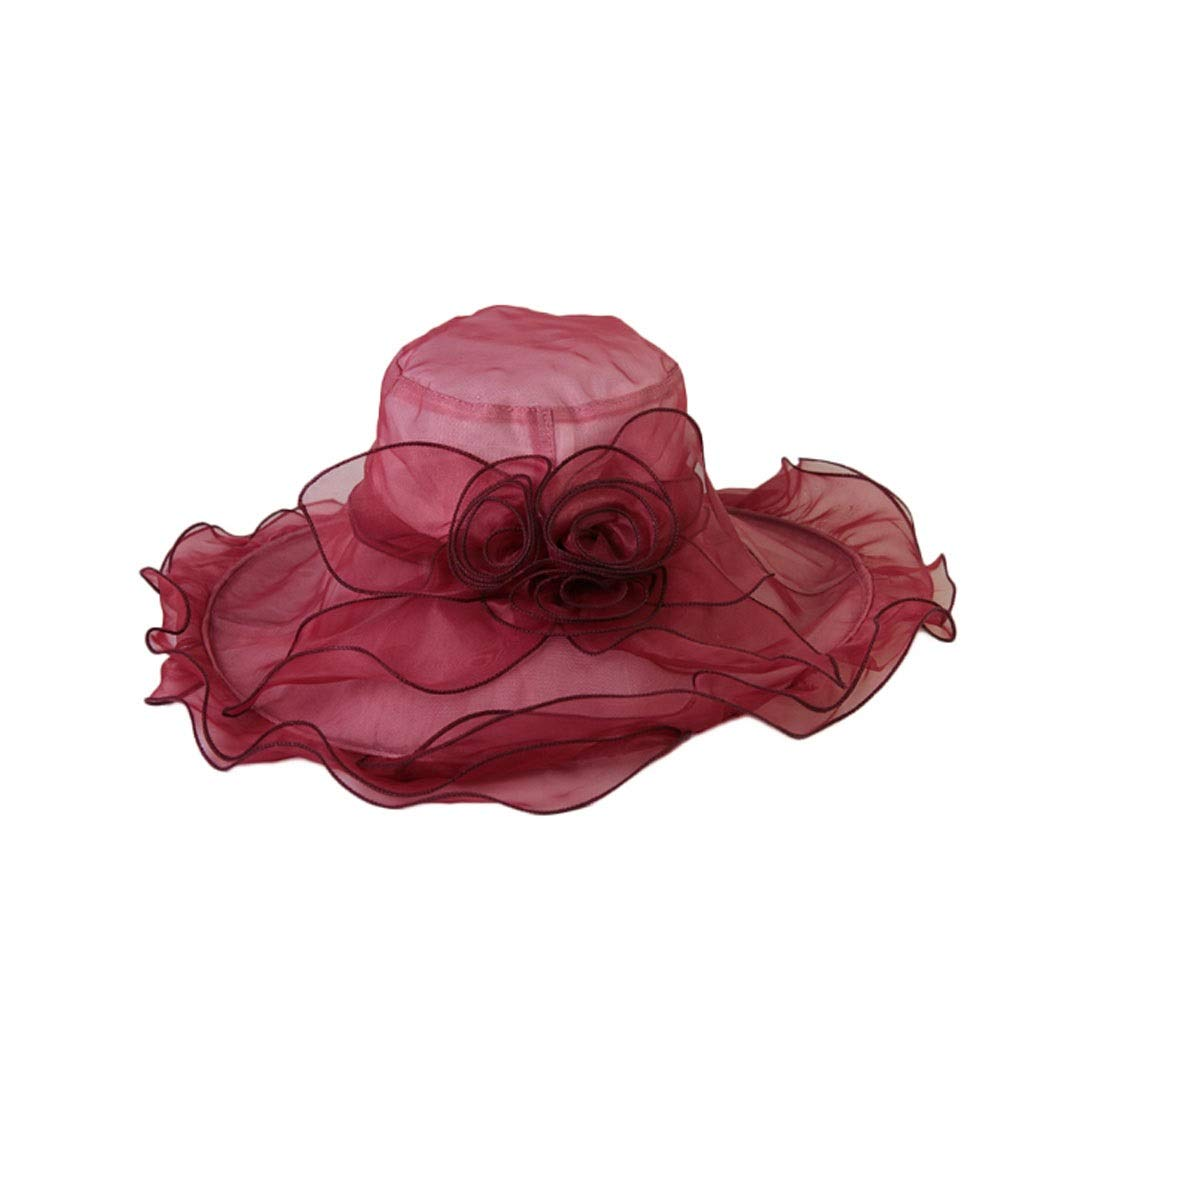 HUIJUNWENTI Hat, Summer Wooden Ear Pleated Three-Dimensional Female Visor, Fashion Hat Female Visor, Size: Adjustable, Color: Gray, Pink, Red, Blue, Wine Red, Yellow Good (Color : Wine red) by HUIJUNWENTI